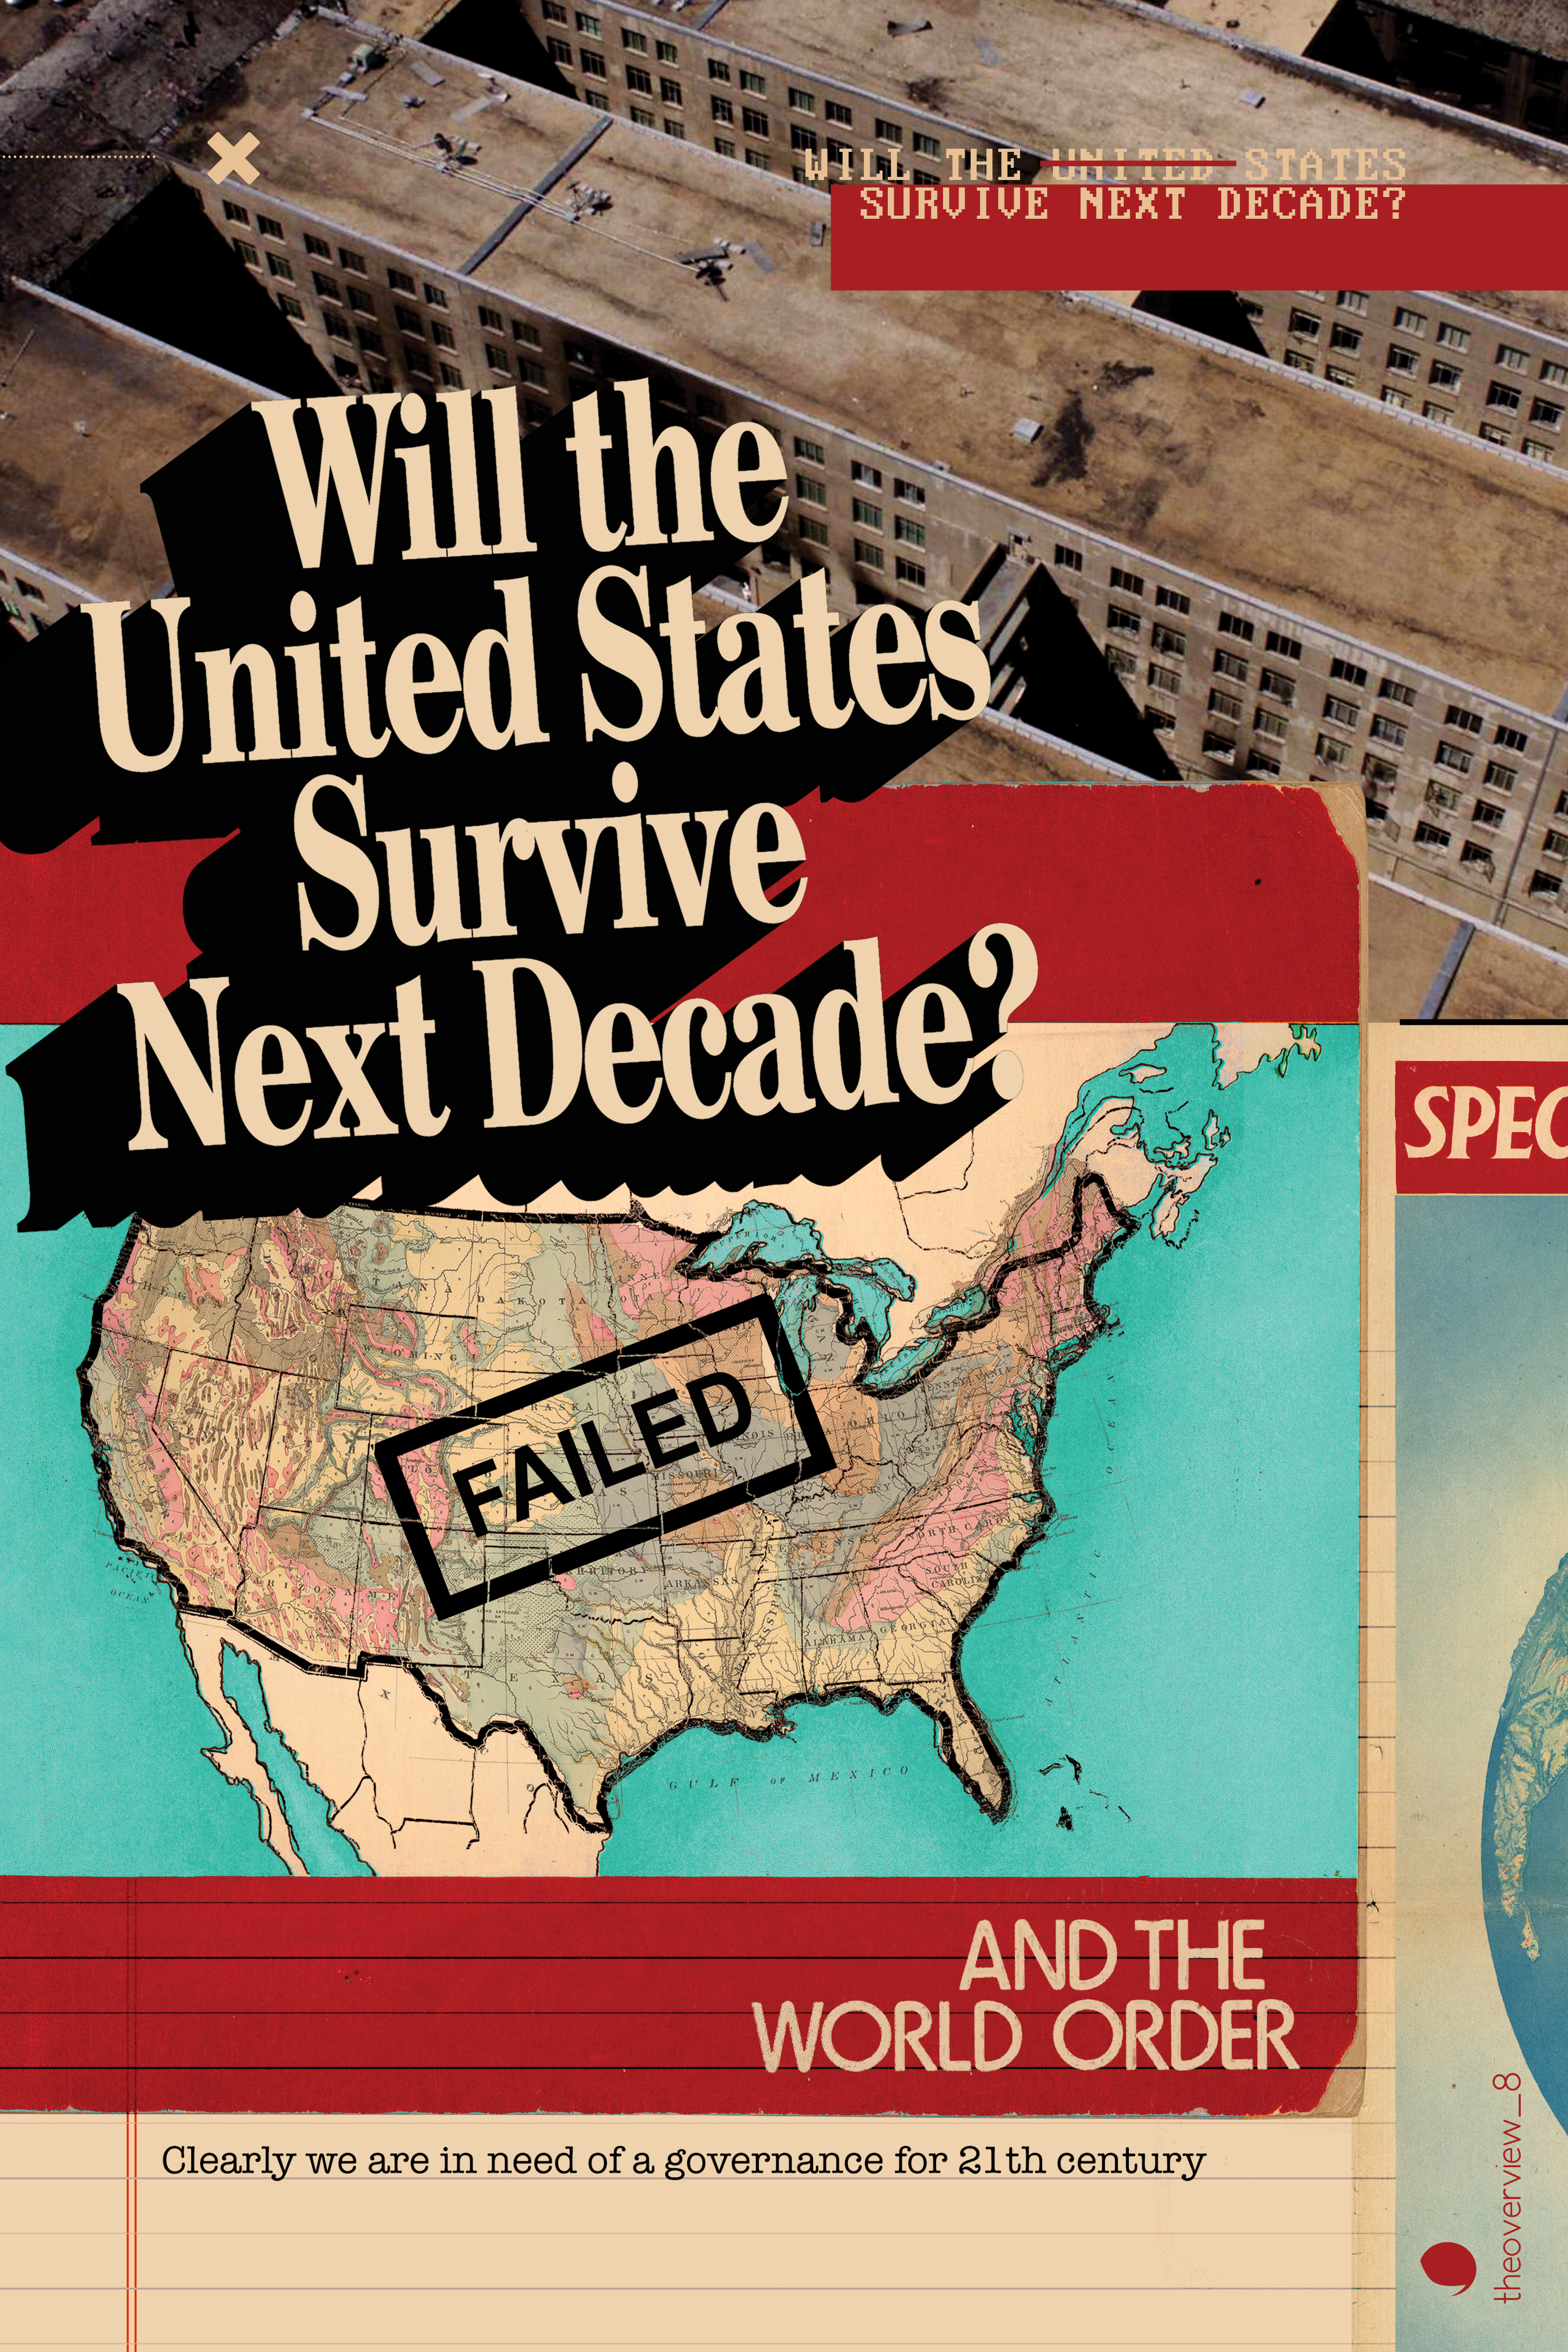 Will the United States survive next decade? theoverview_8